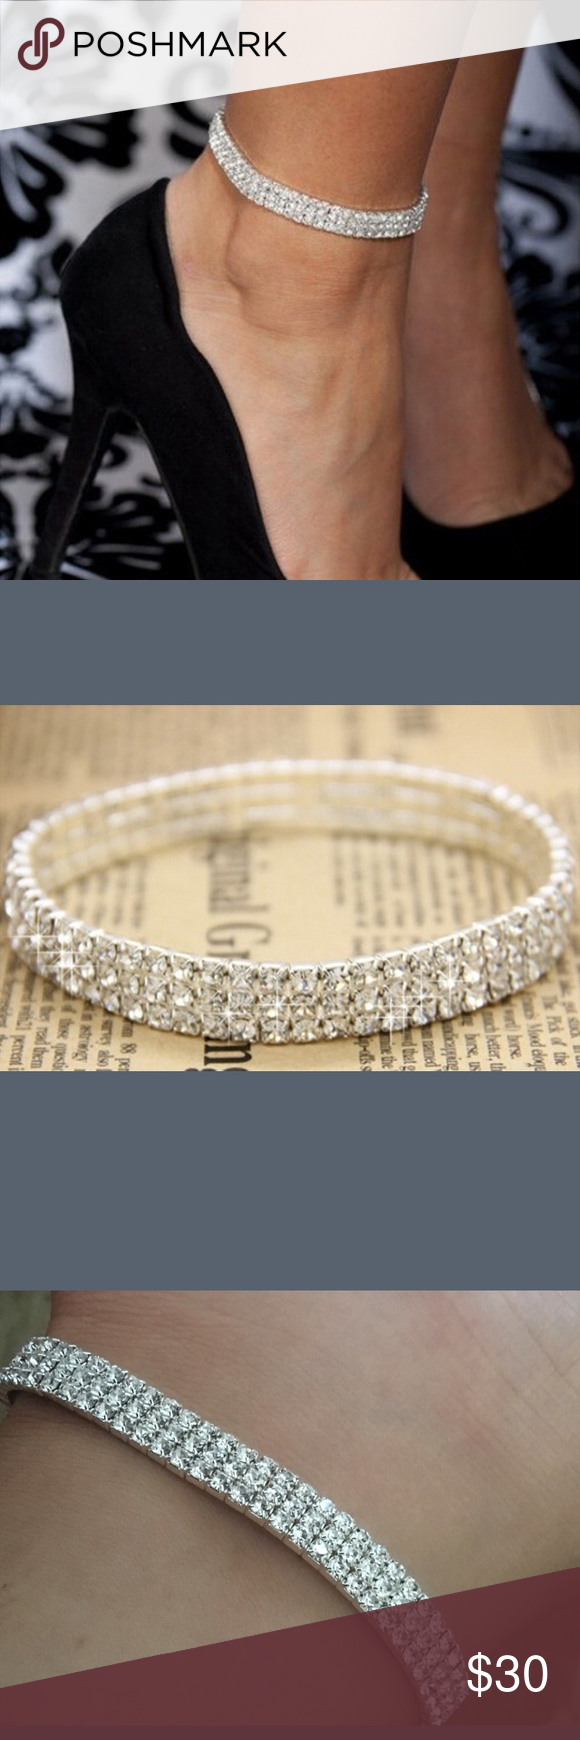 dp silver com imitation tone diamond anklet gl sizes rhinestone all ankle tennis bracelet for handmade amazon